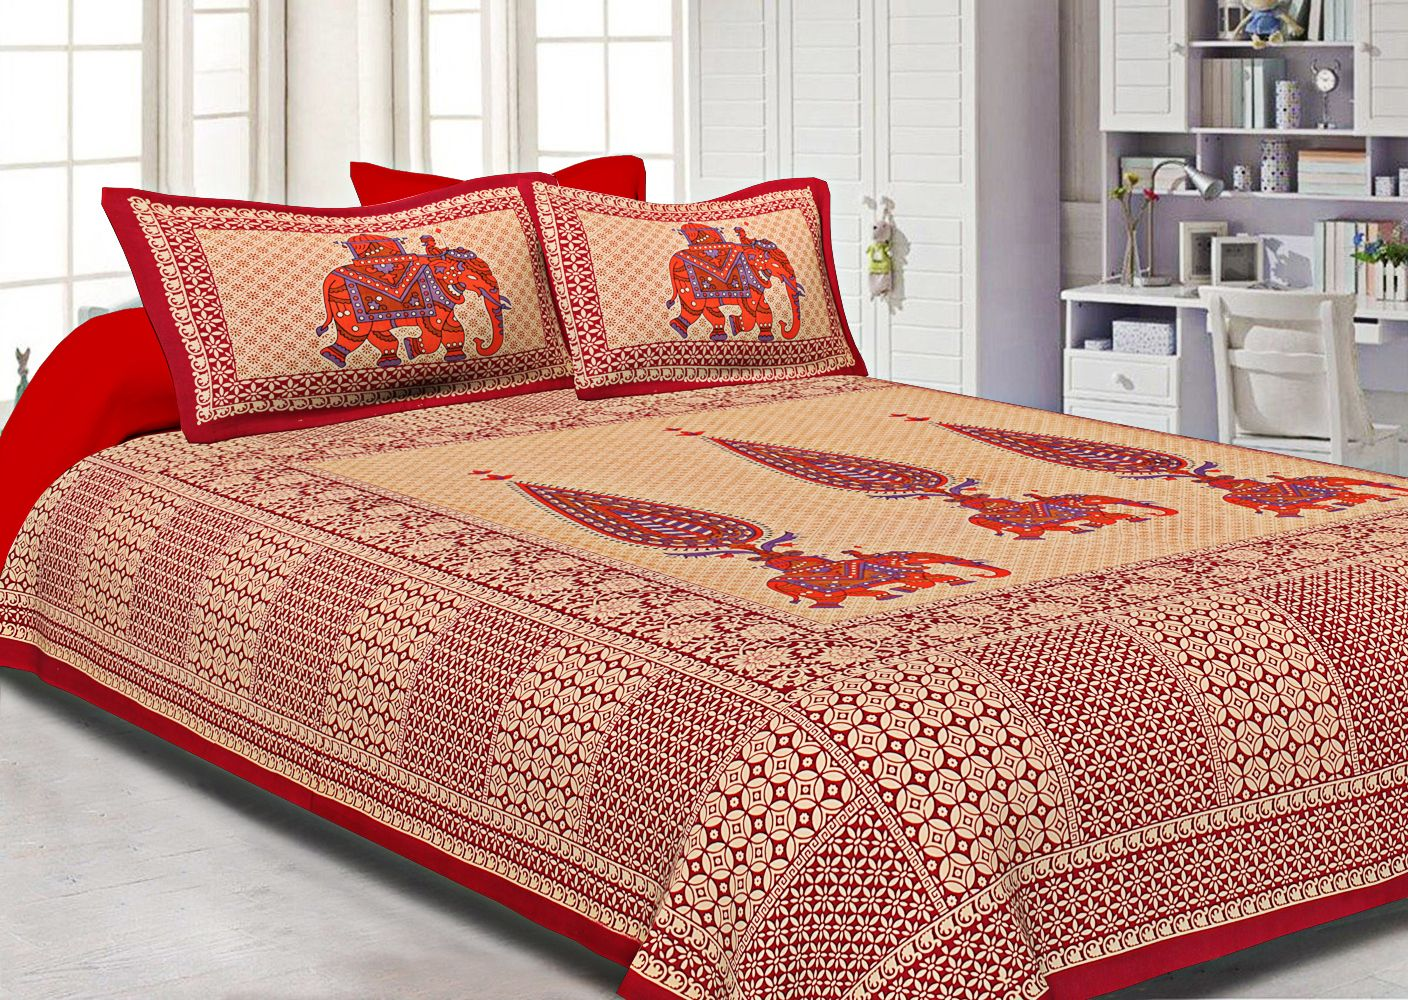 Orange Border Leaf With Elephant Print Fine Cotton Double Bed Sheet